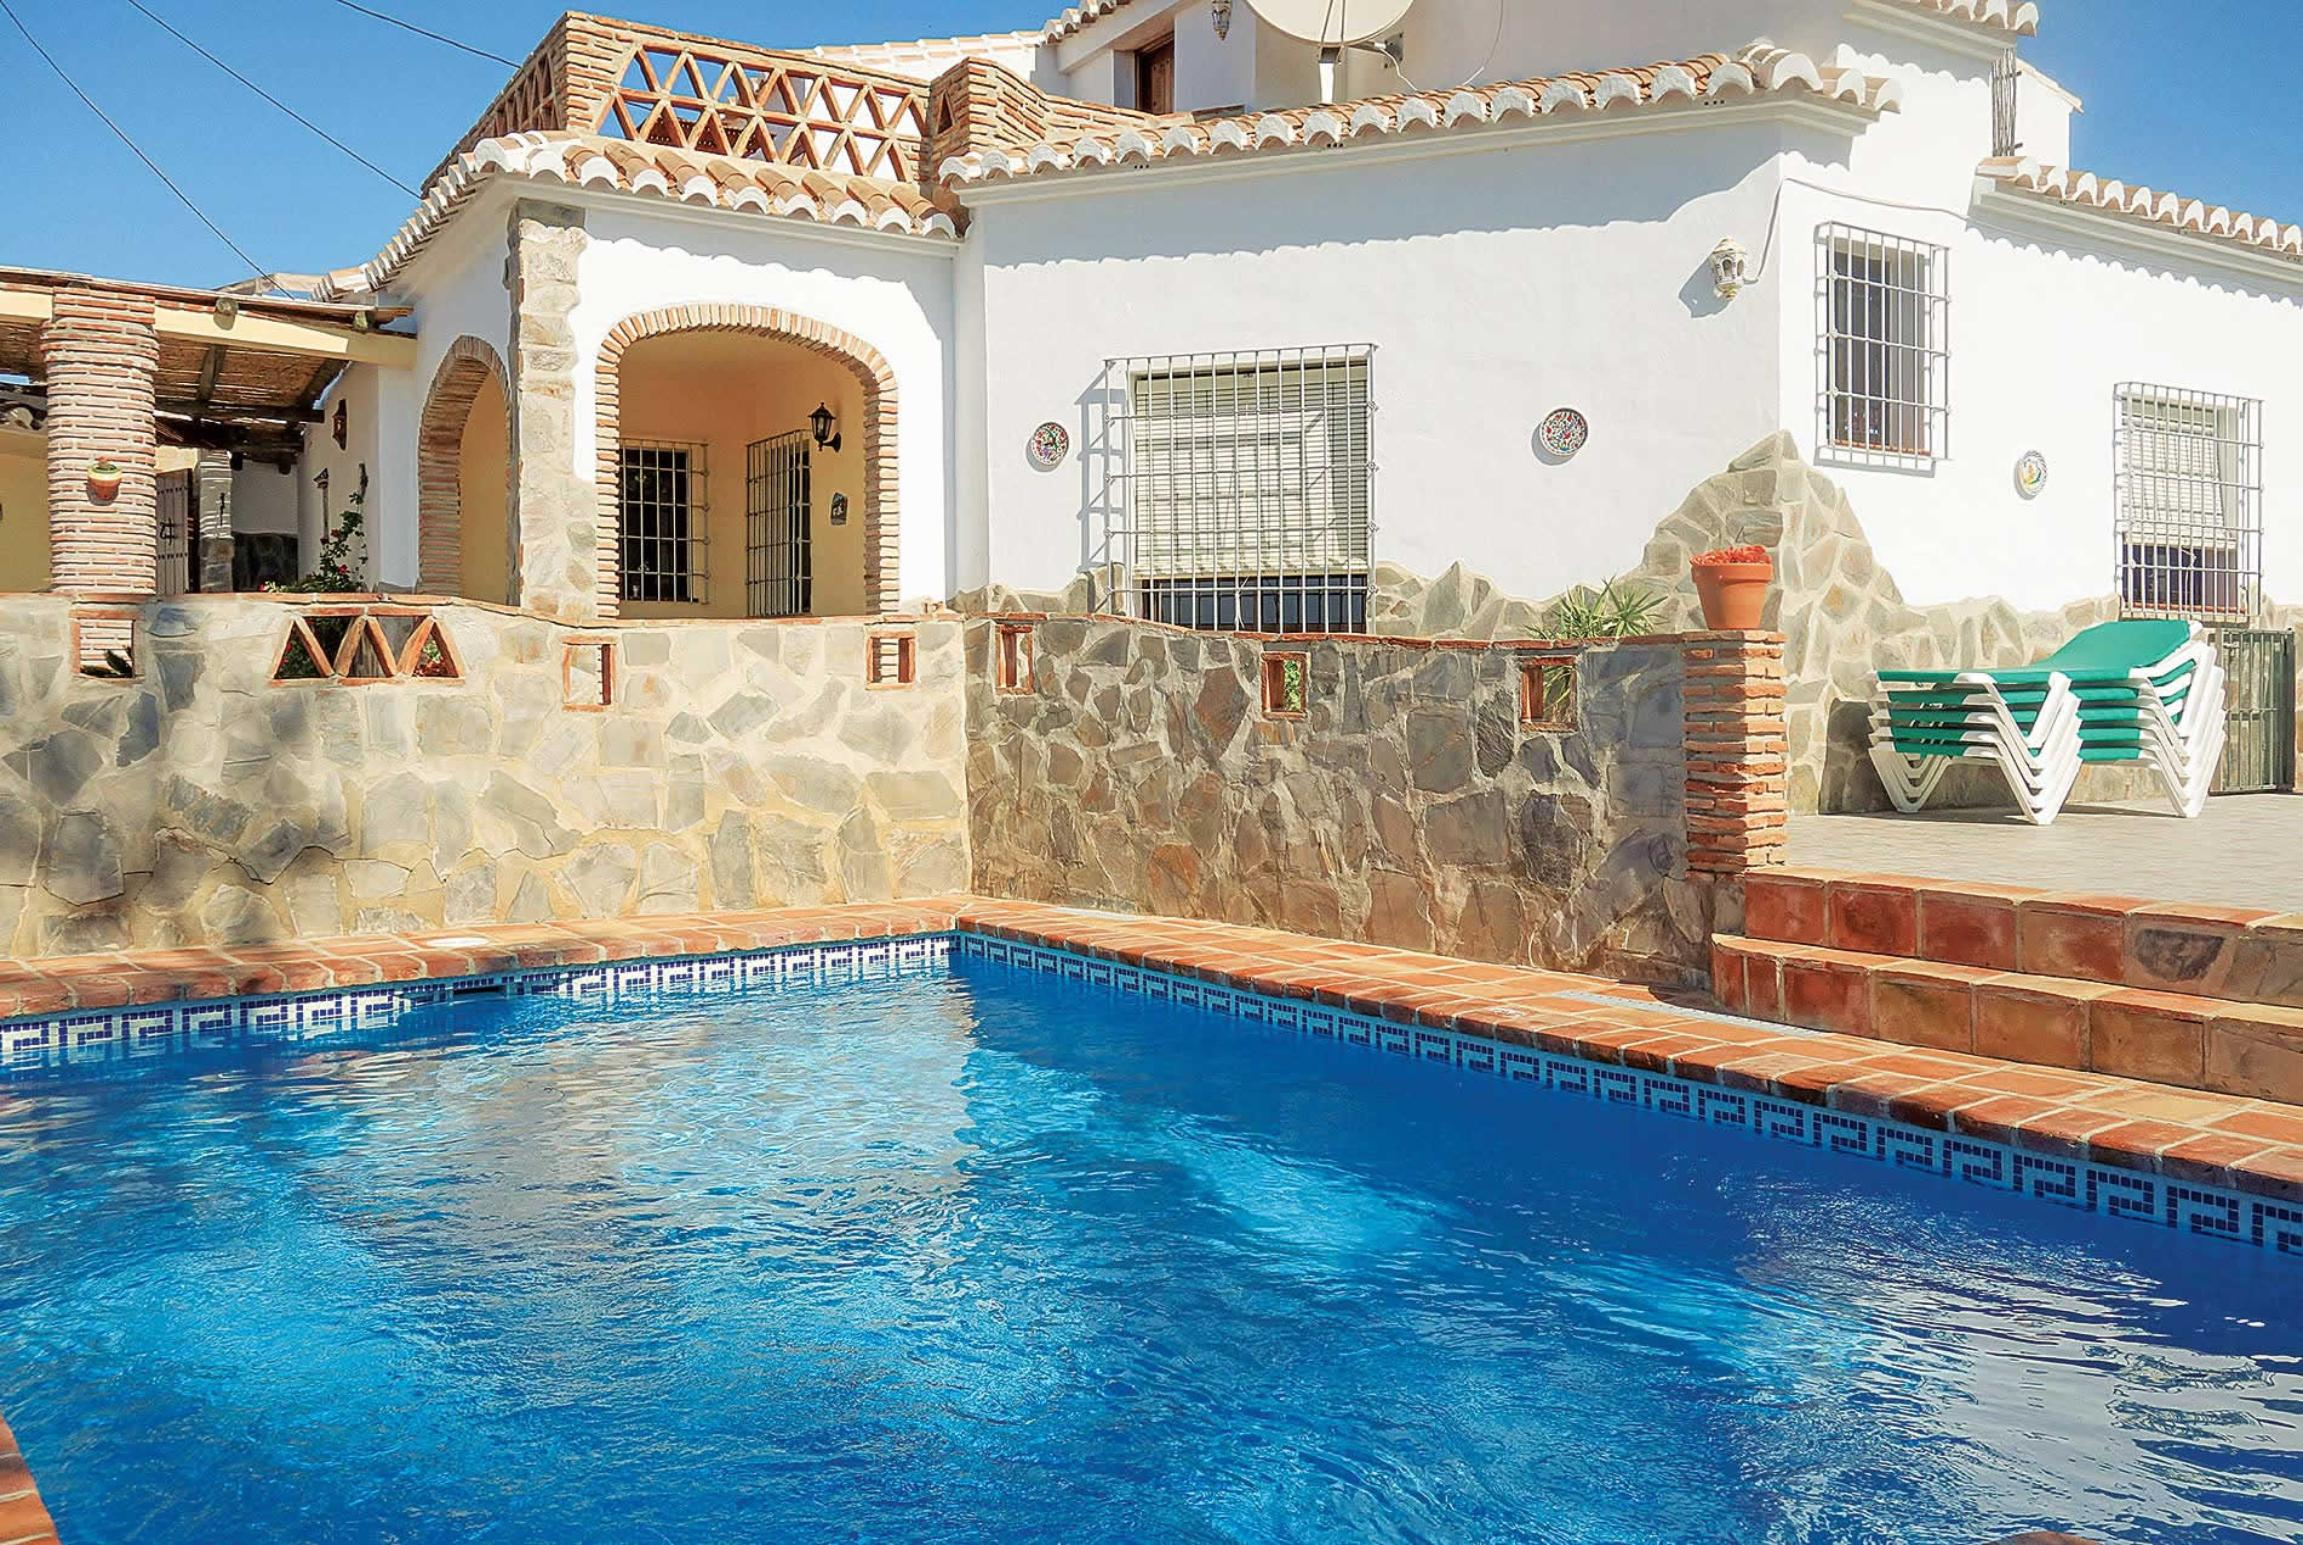 Read more about Aranzazu villa